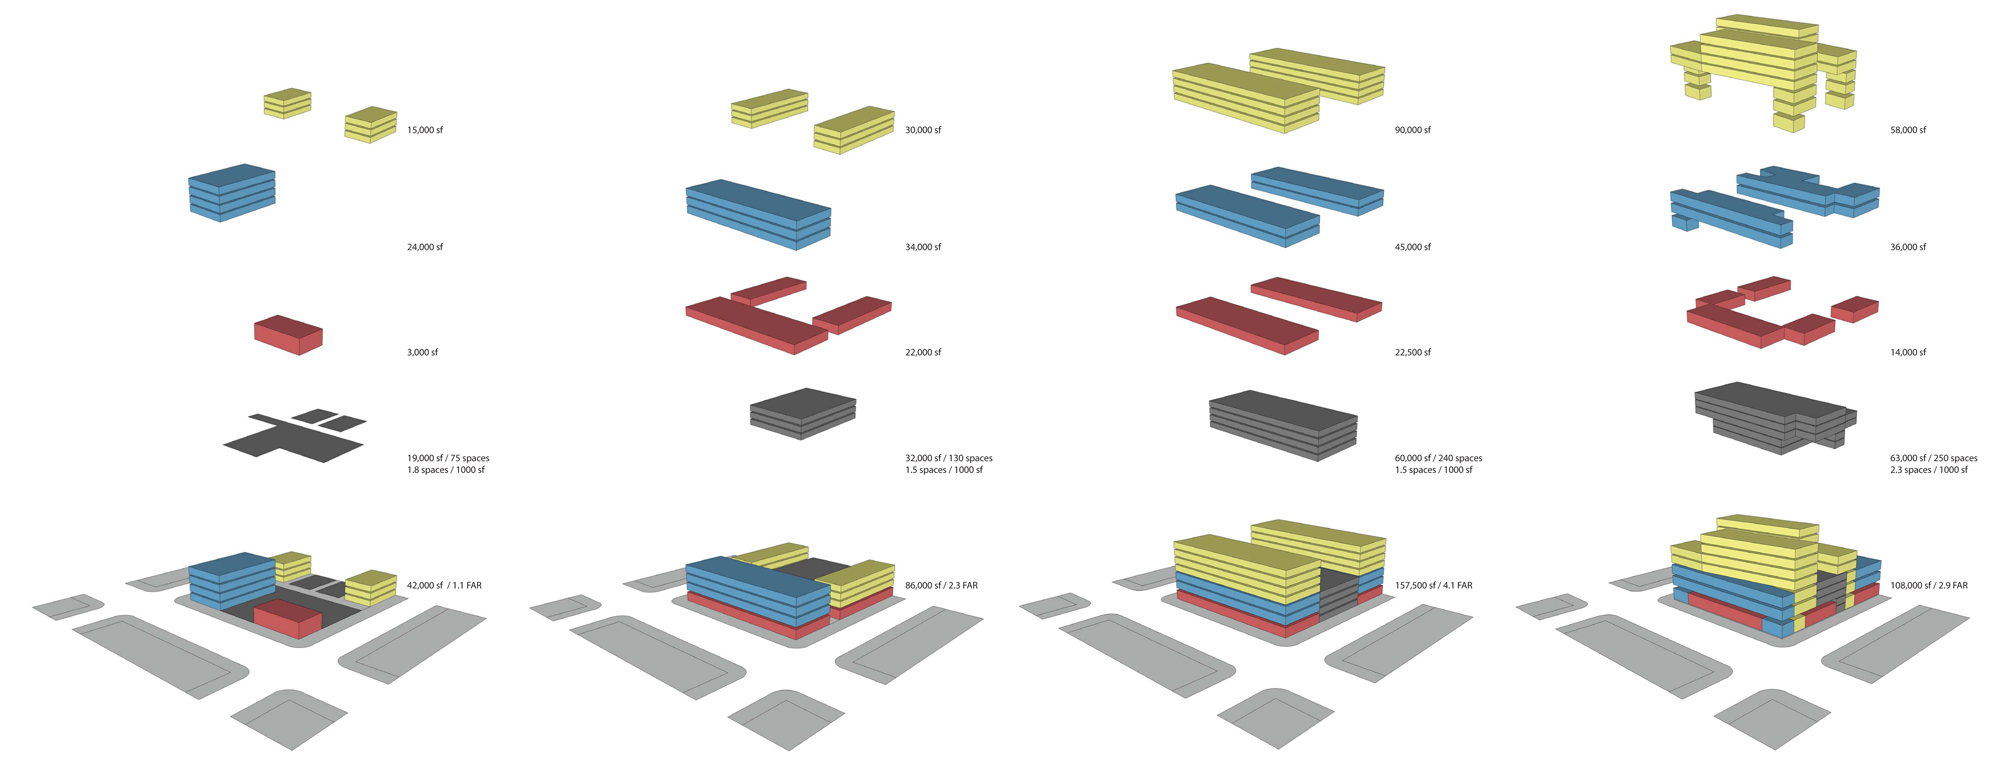 Mixed Use Building Typologies